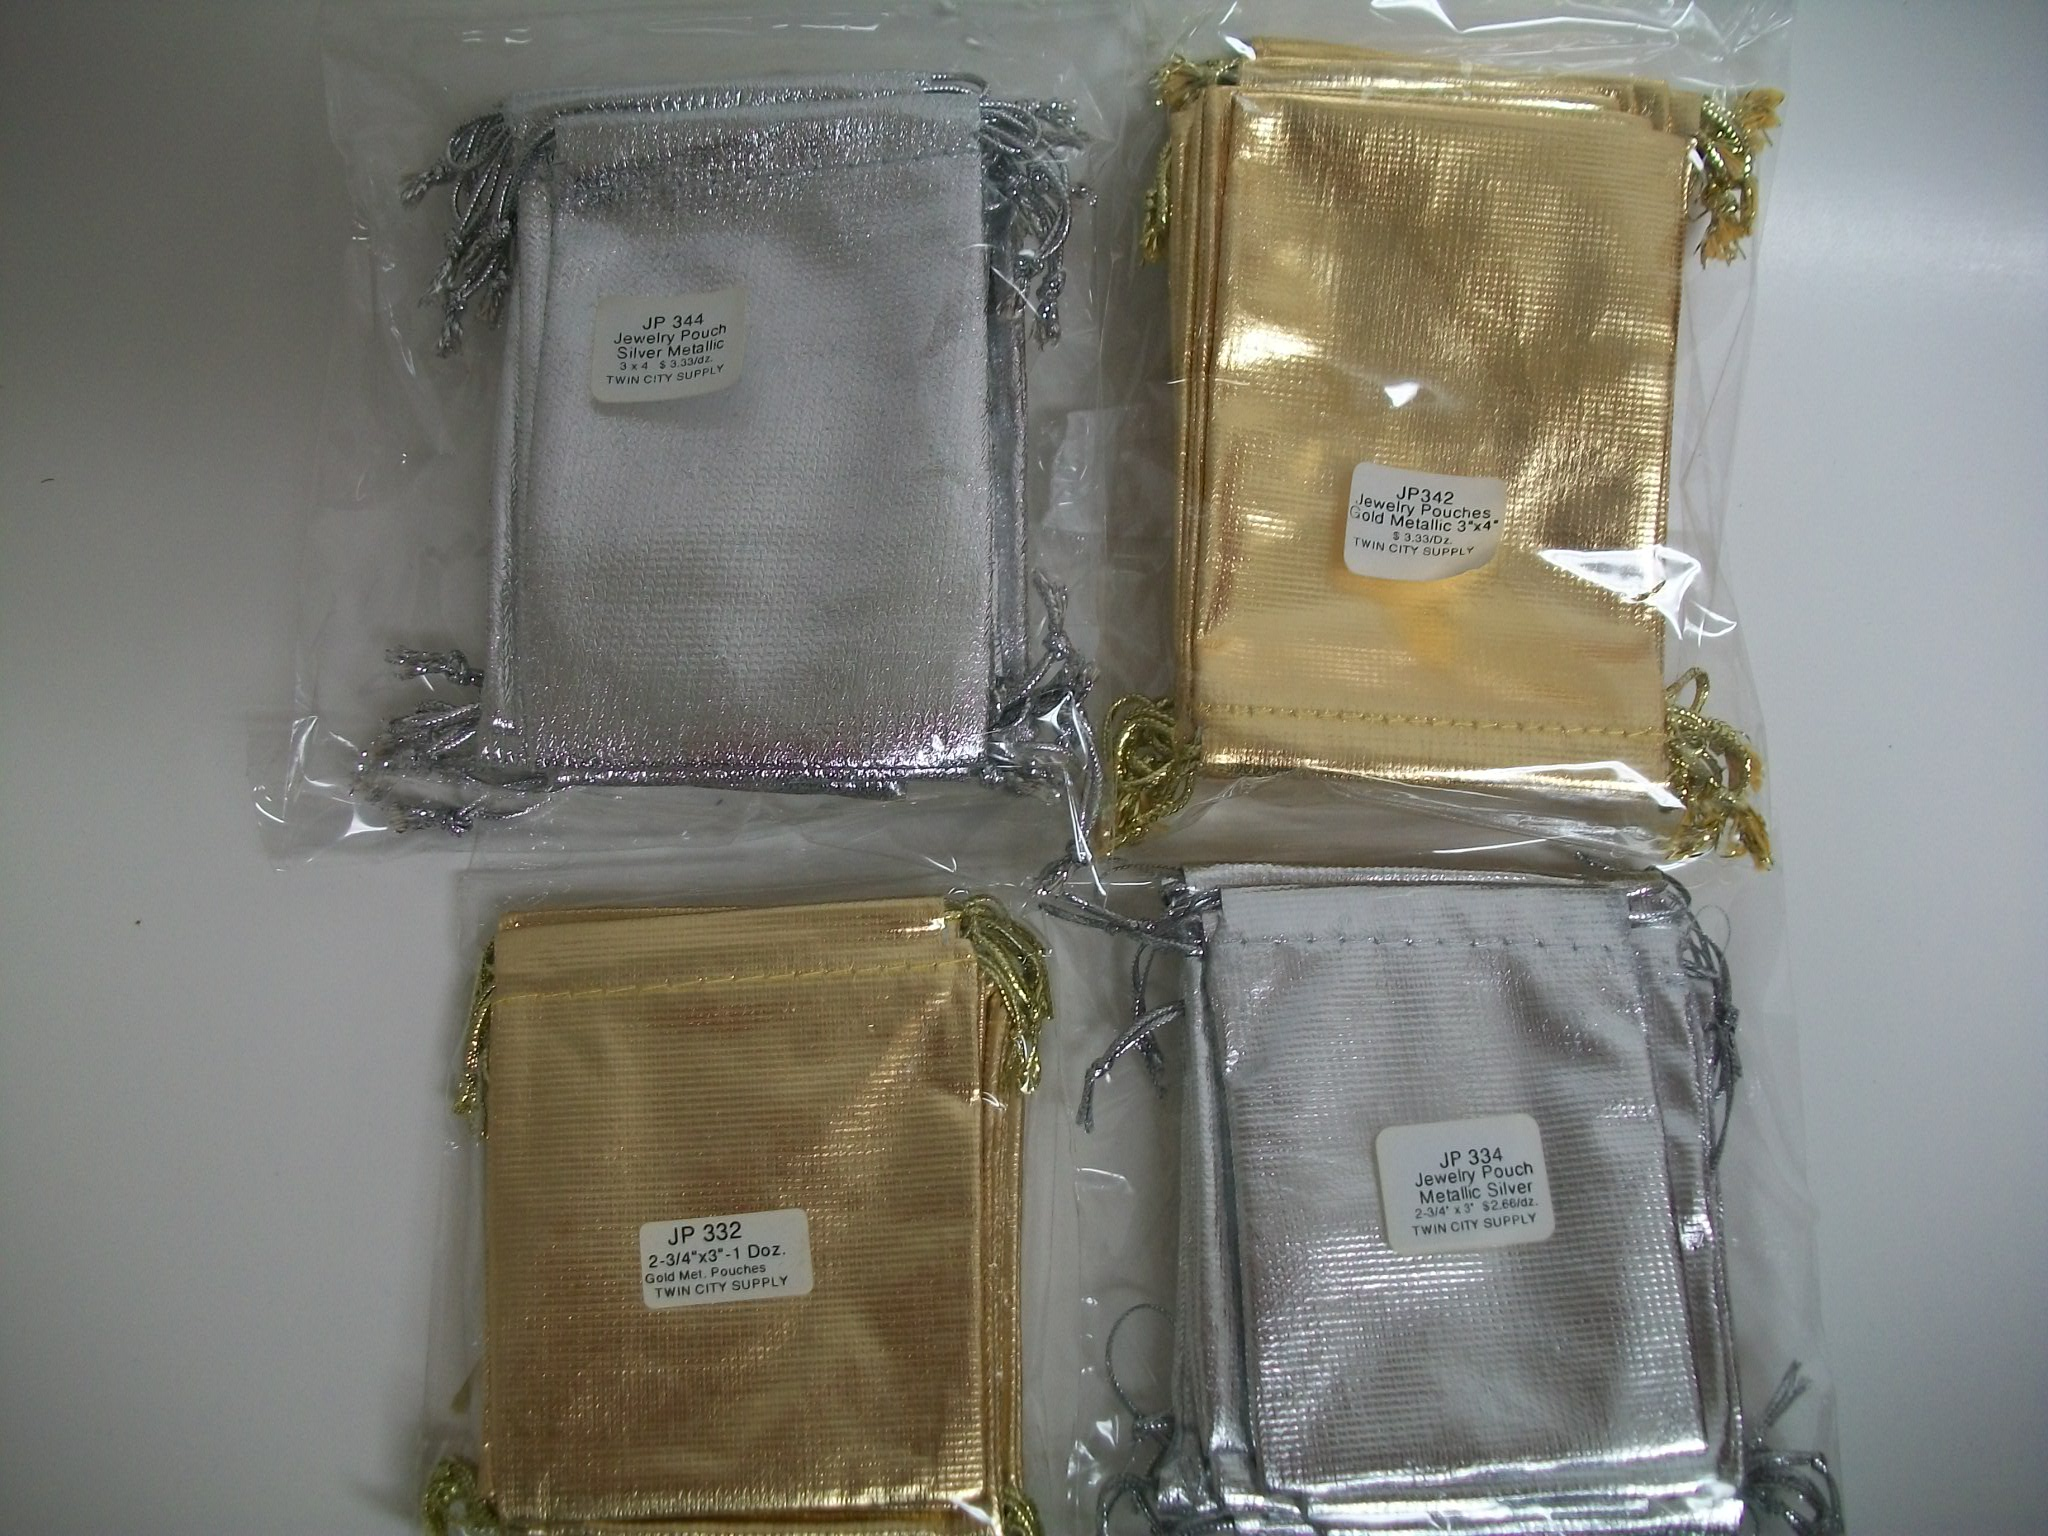 JP334 Jewelry Pouches--Metallic Silver--small--1 dozen package